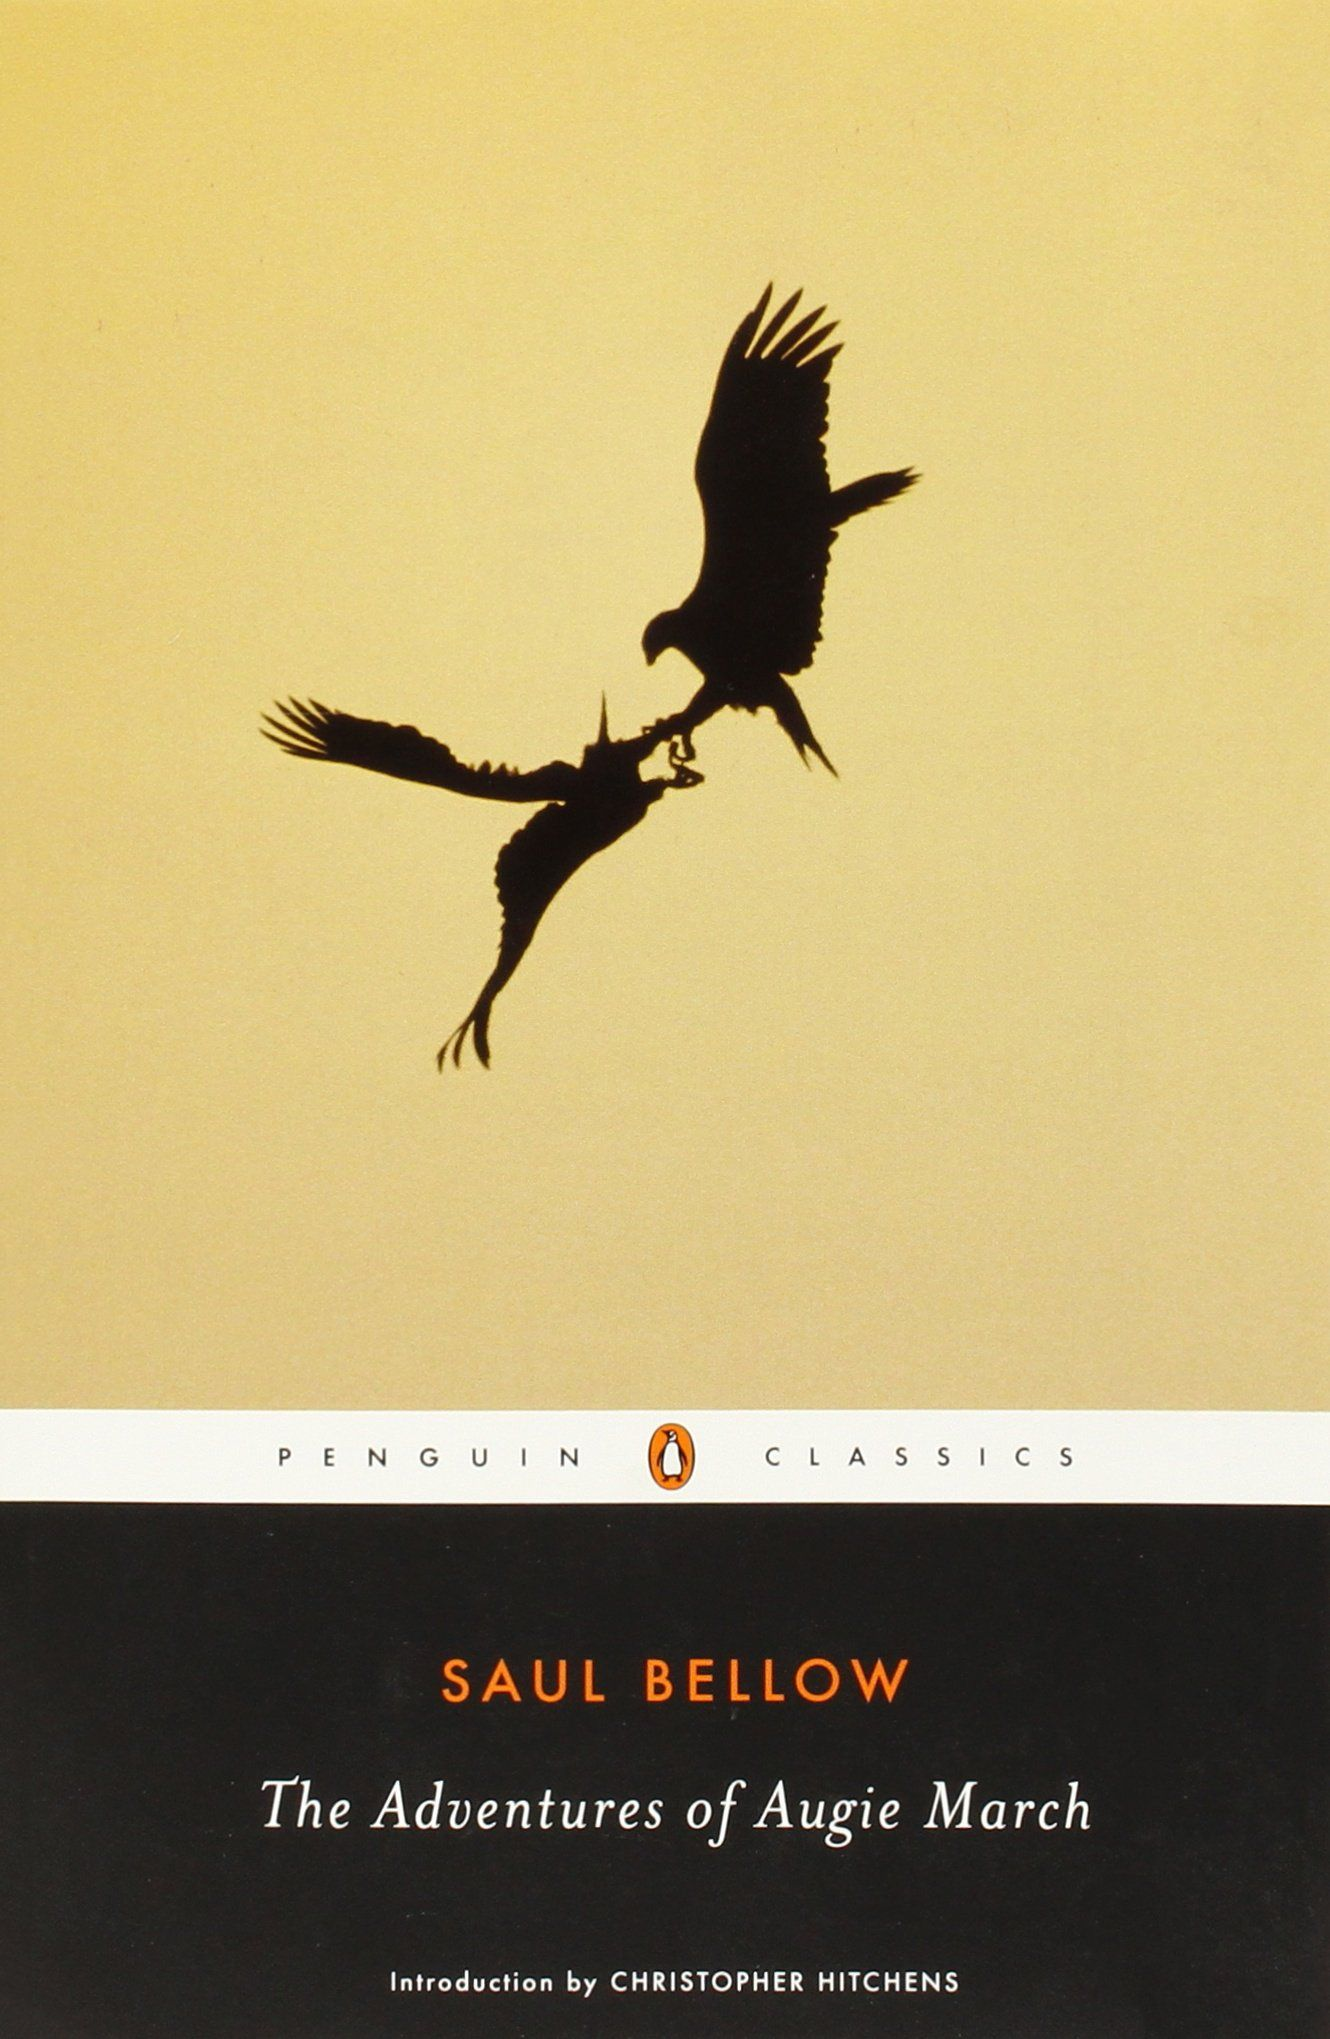 05 The Adventures of Augie March, Saul Bellow